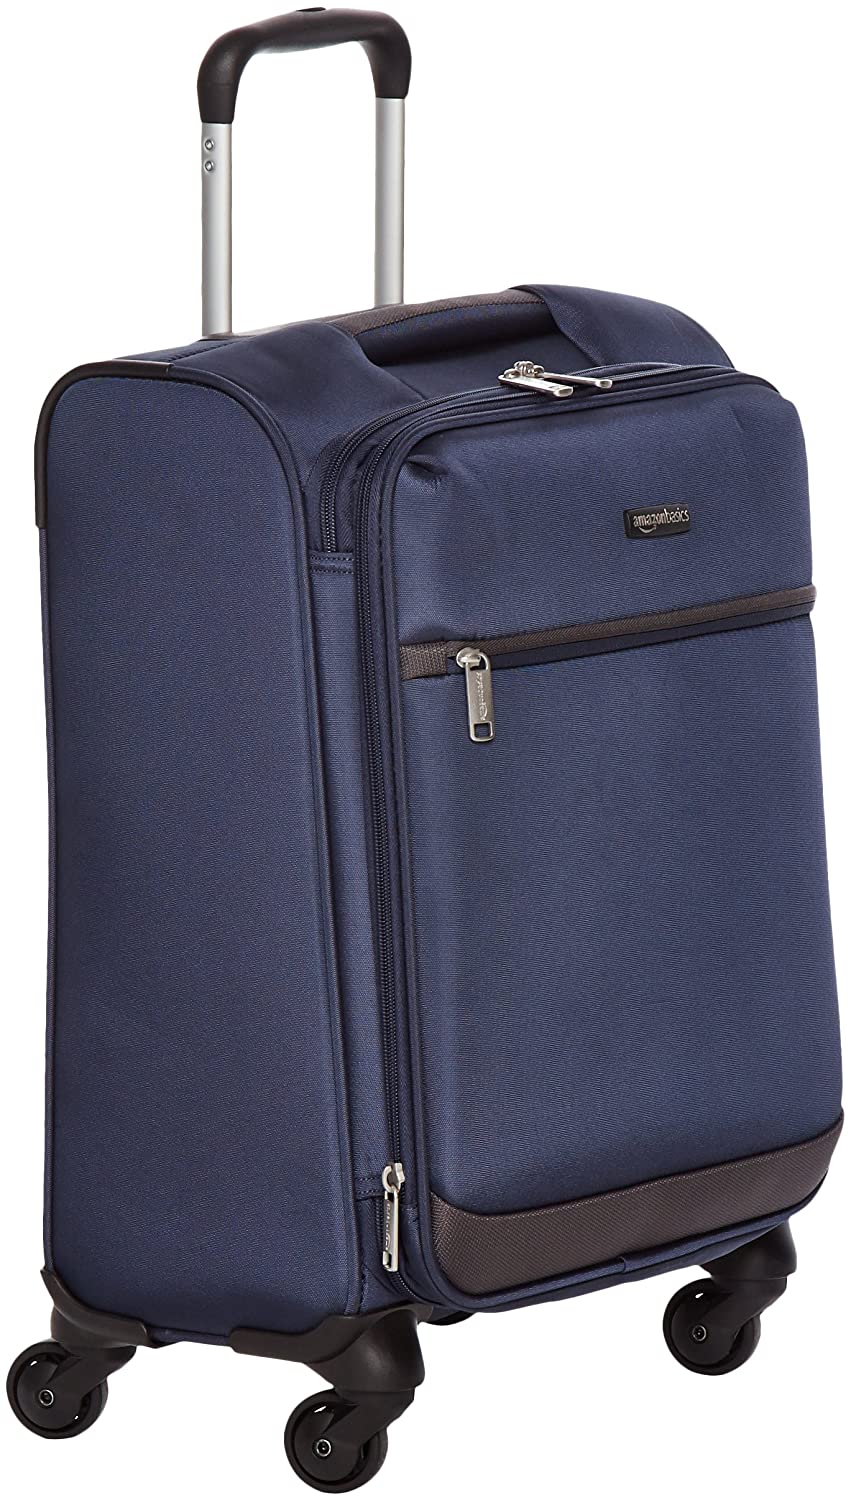 AmazonBasics Softside Spinner Luggage - 25-inch, Navy Blue N802